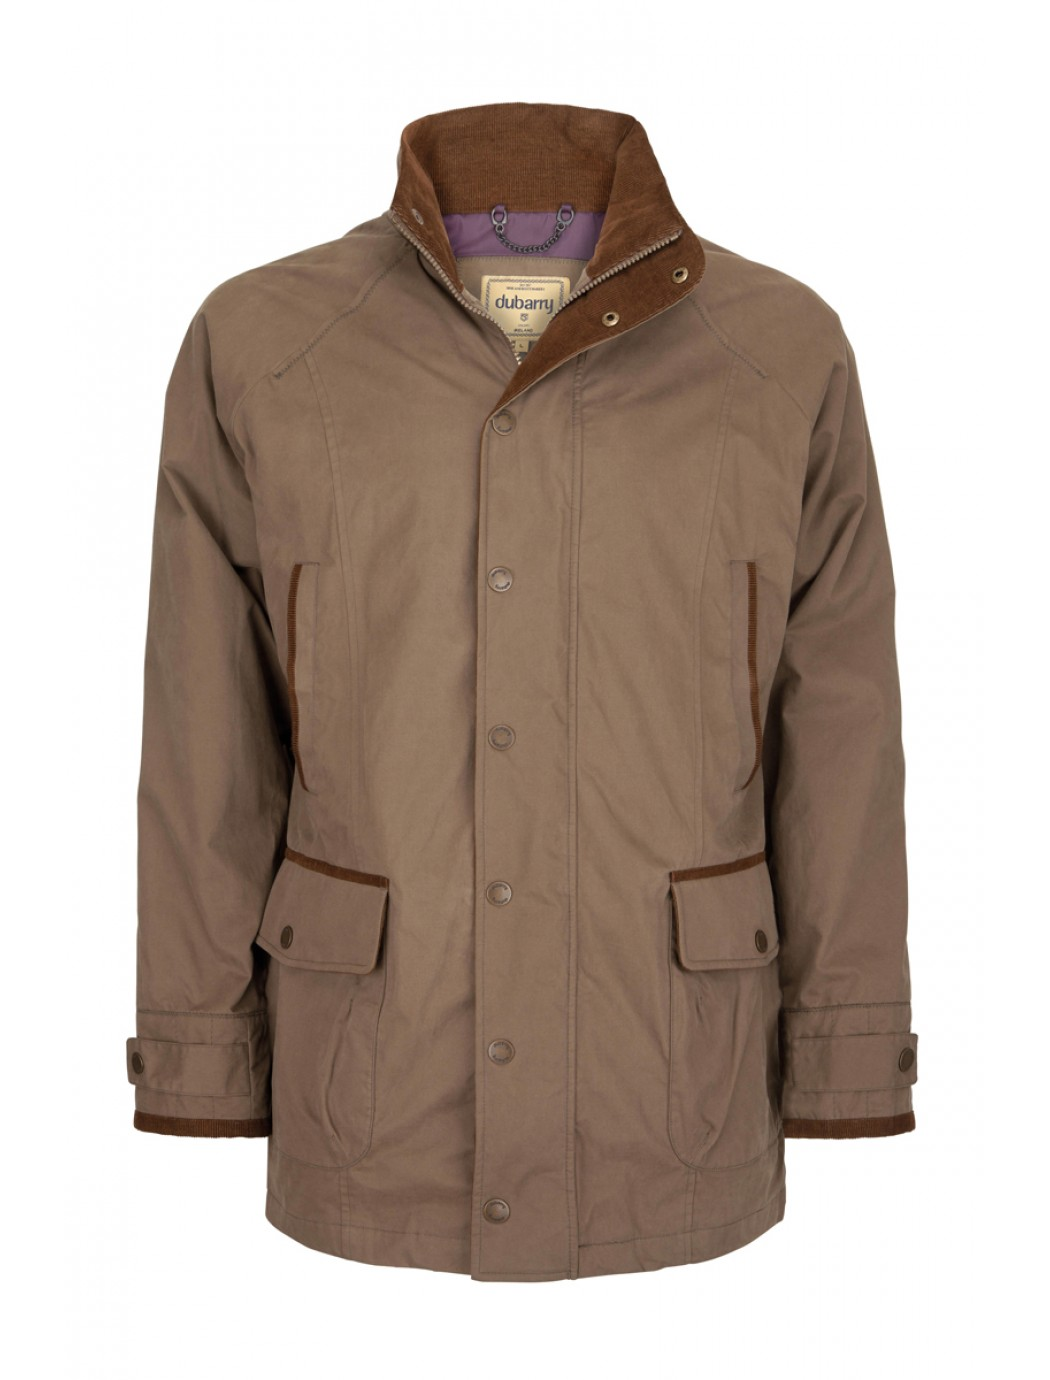 connell-jacket-loden-dubarry-1 1 2